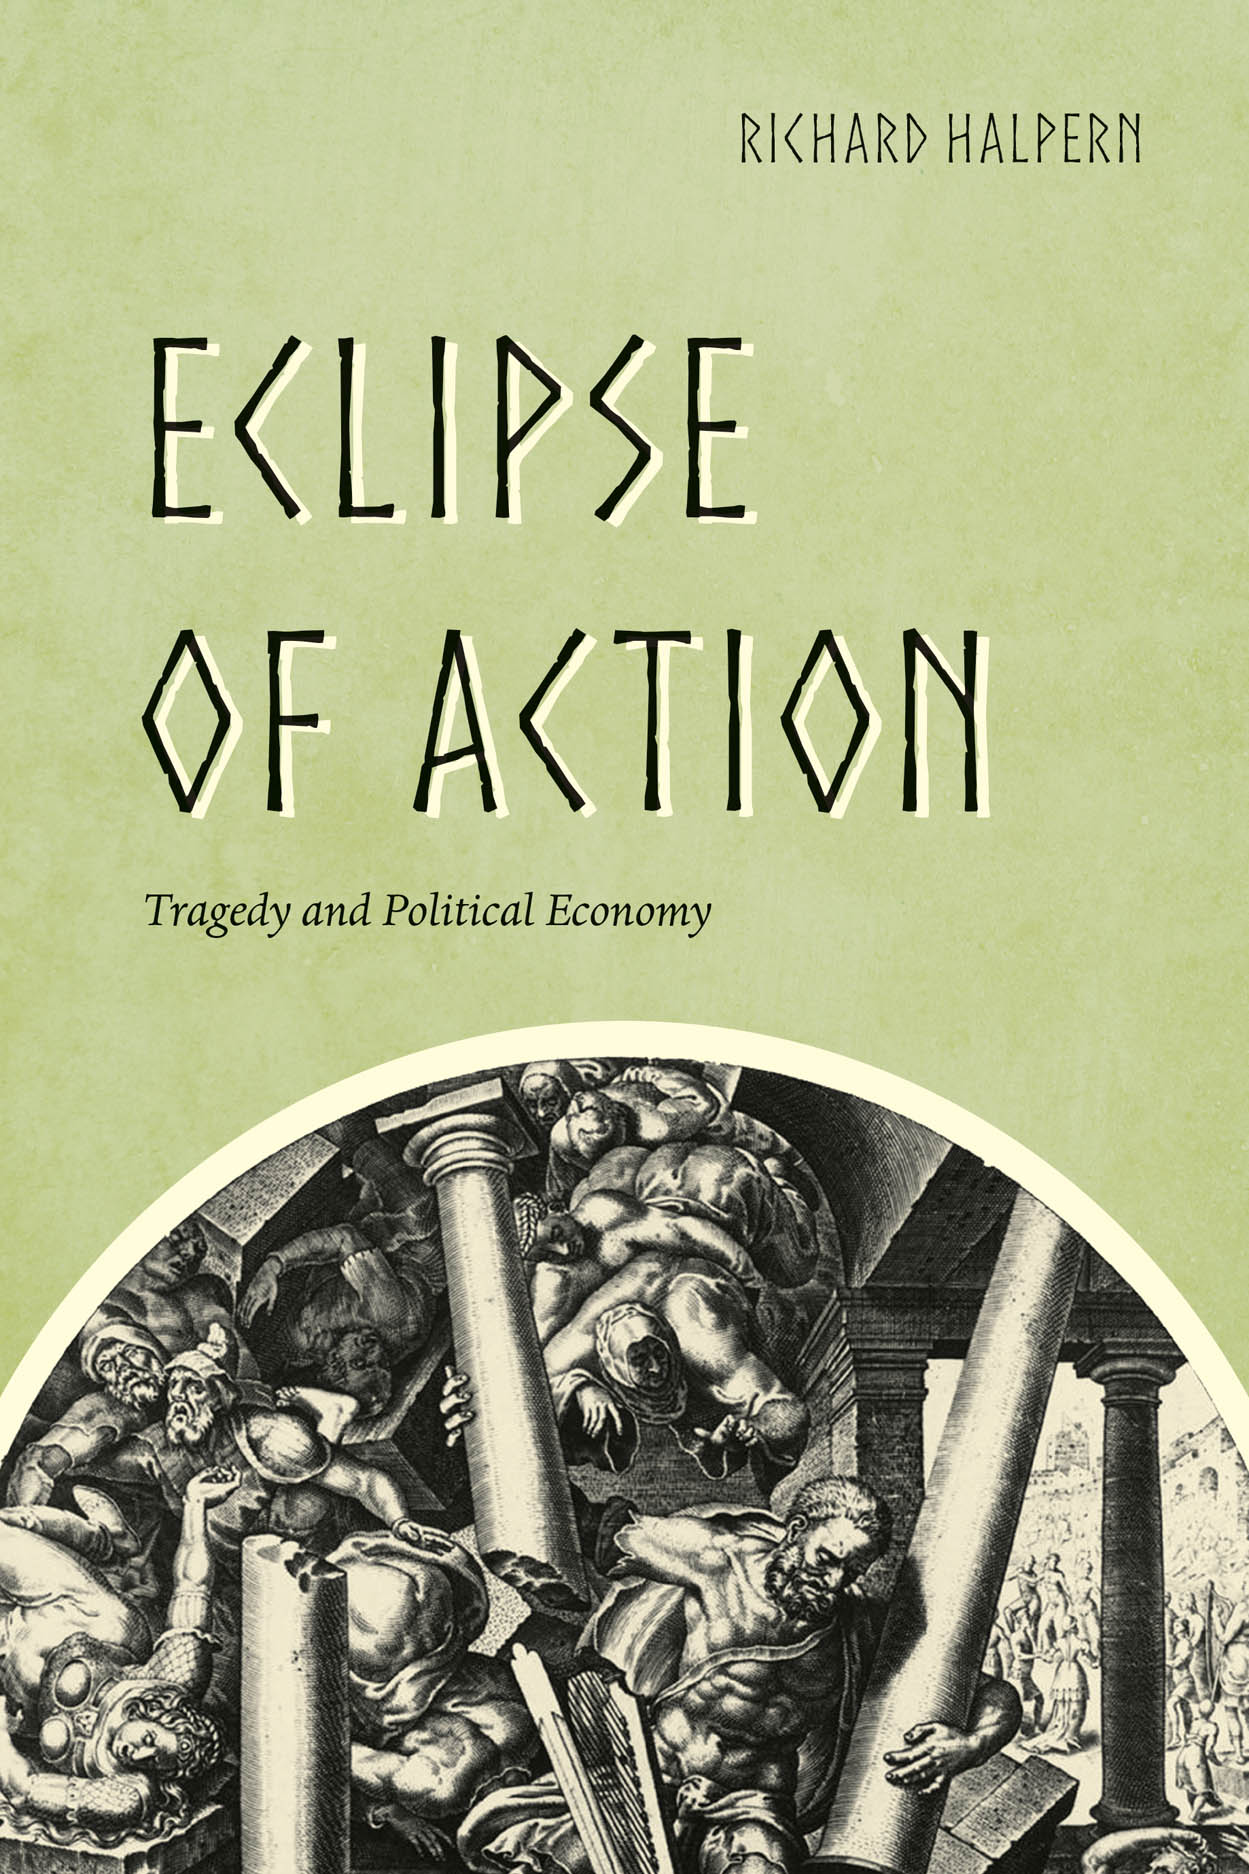 Eclipse of Action